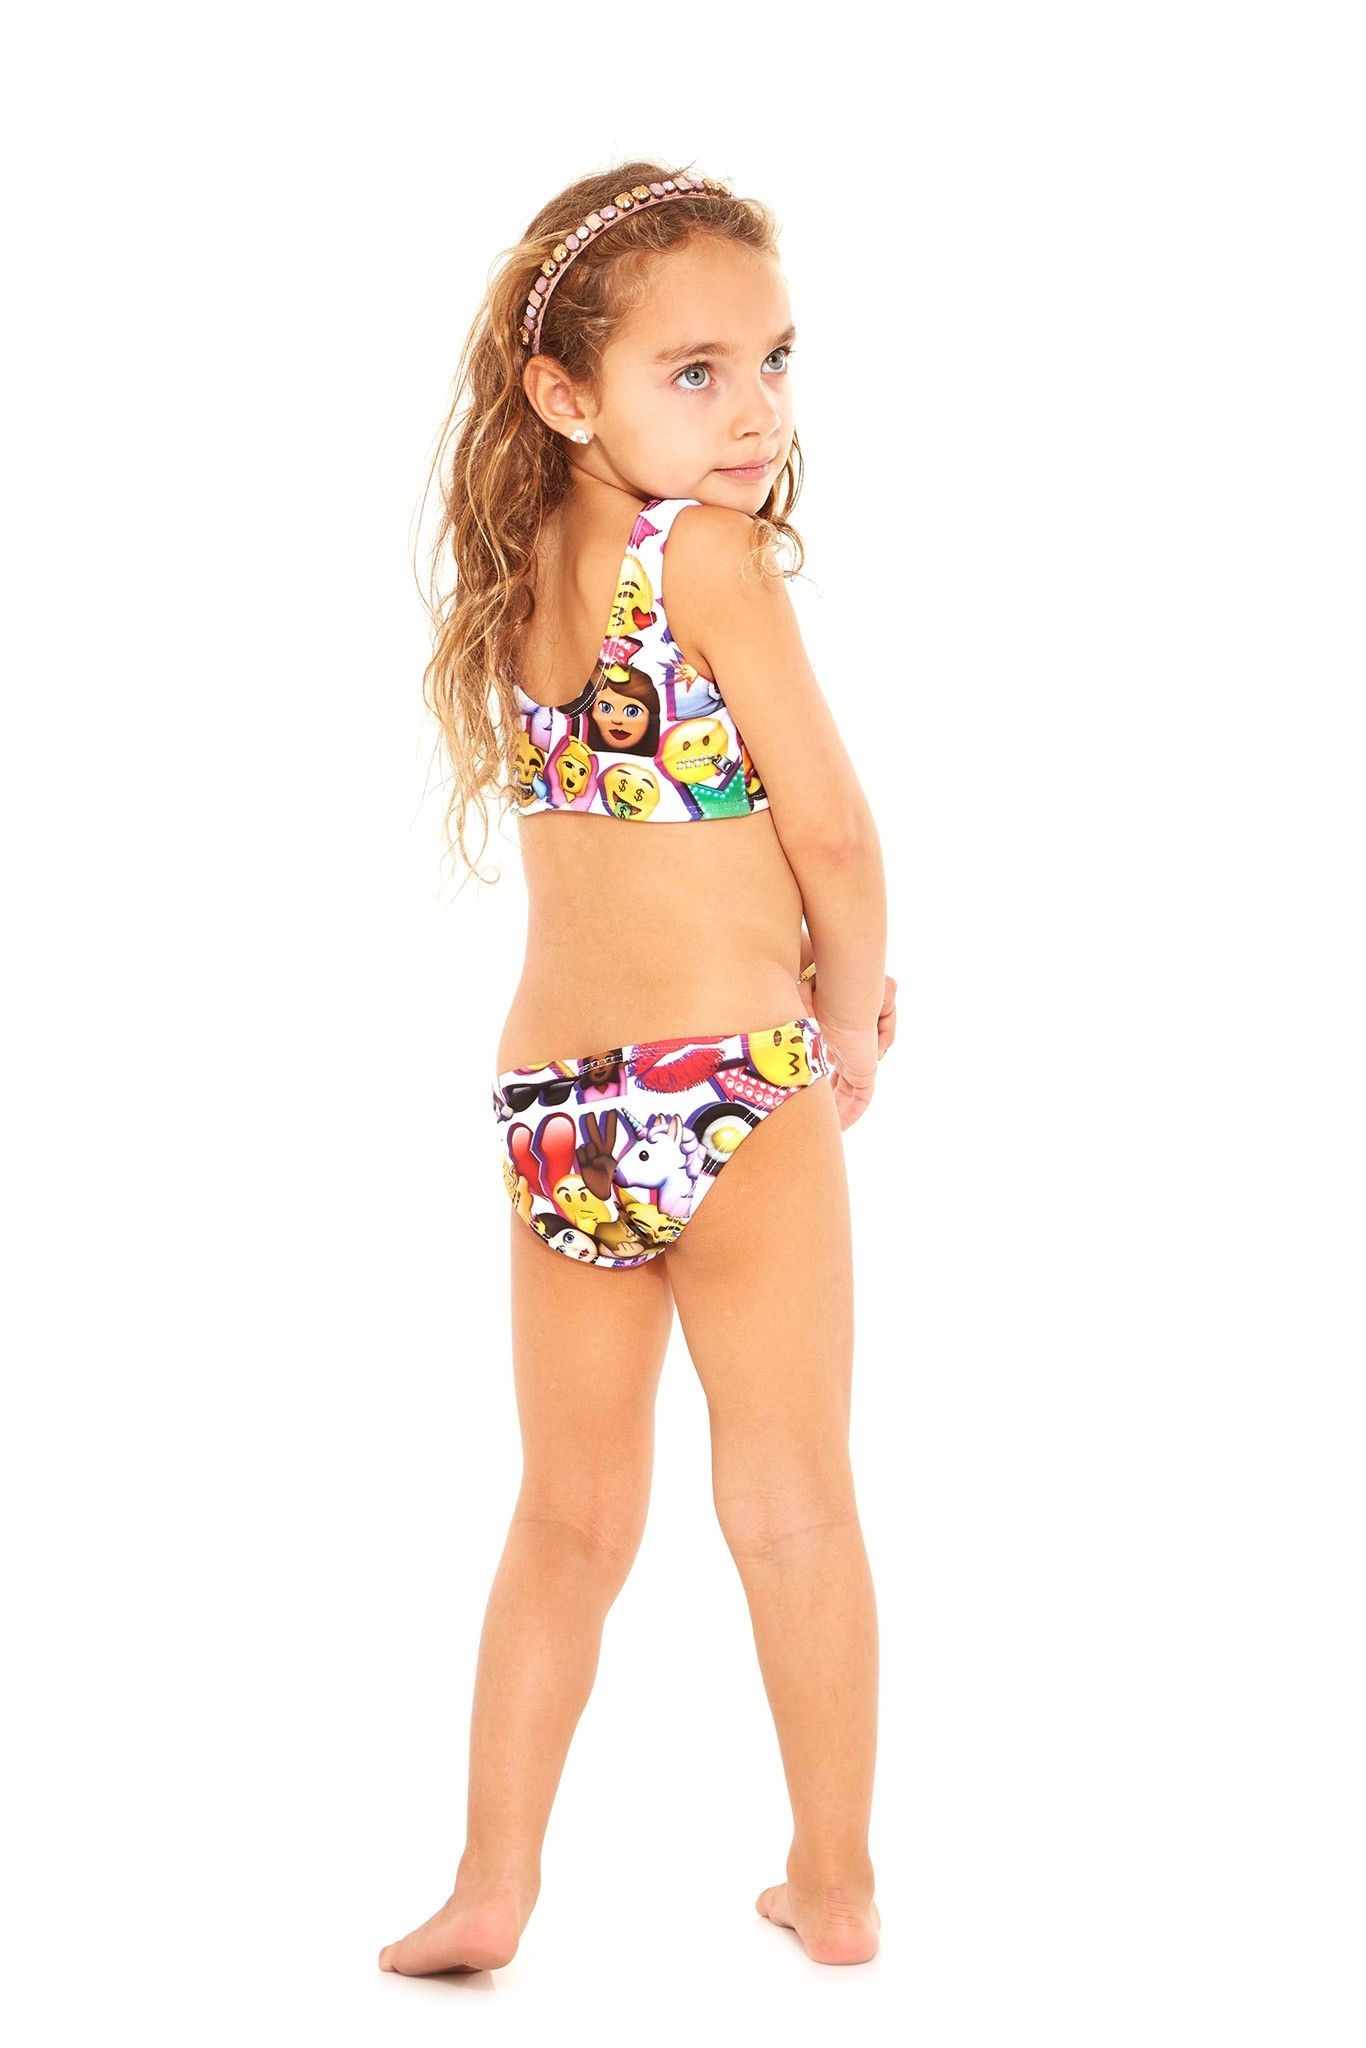 d5a8a02570cc1 Terez Kids 100% Emoji Sports Bra Bikini - 2 | Products | Sports bra ...